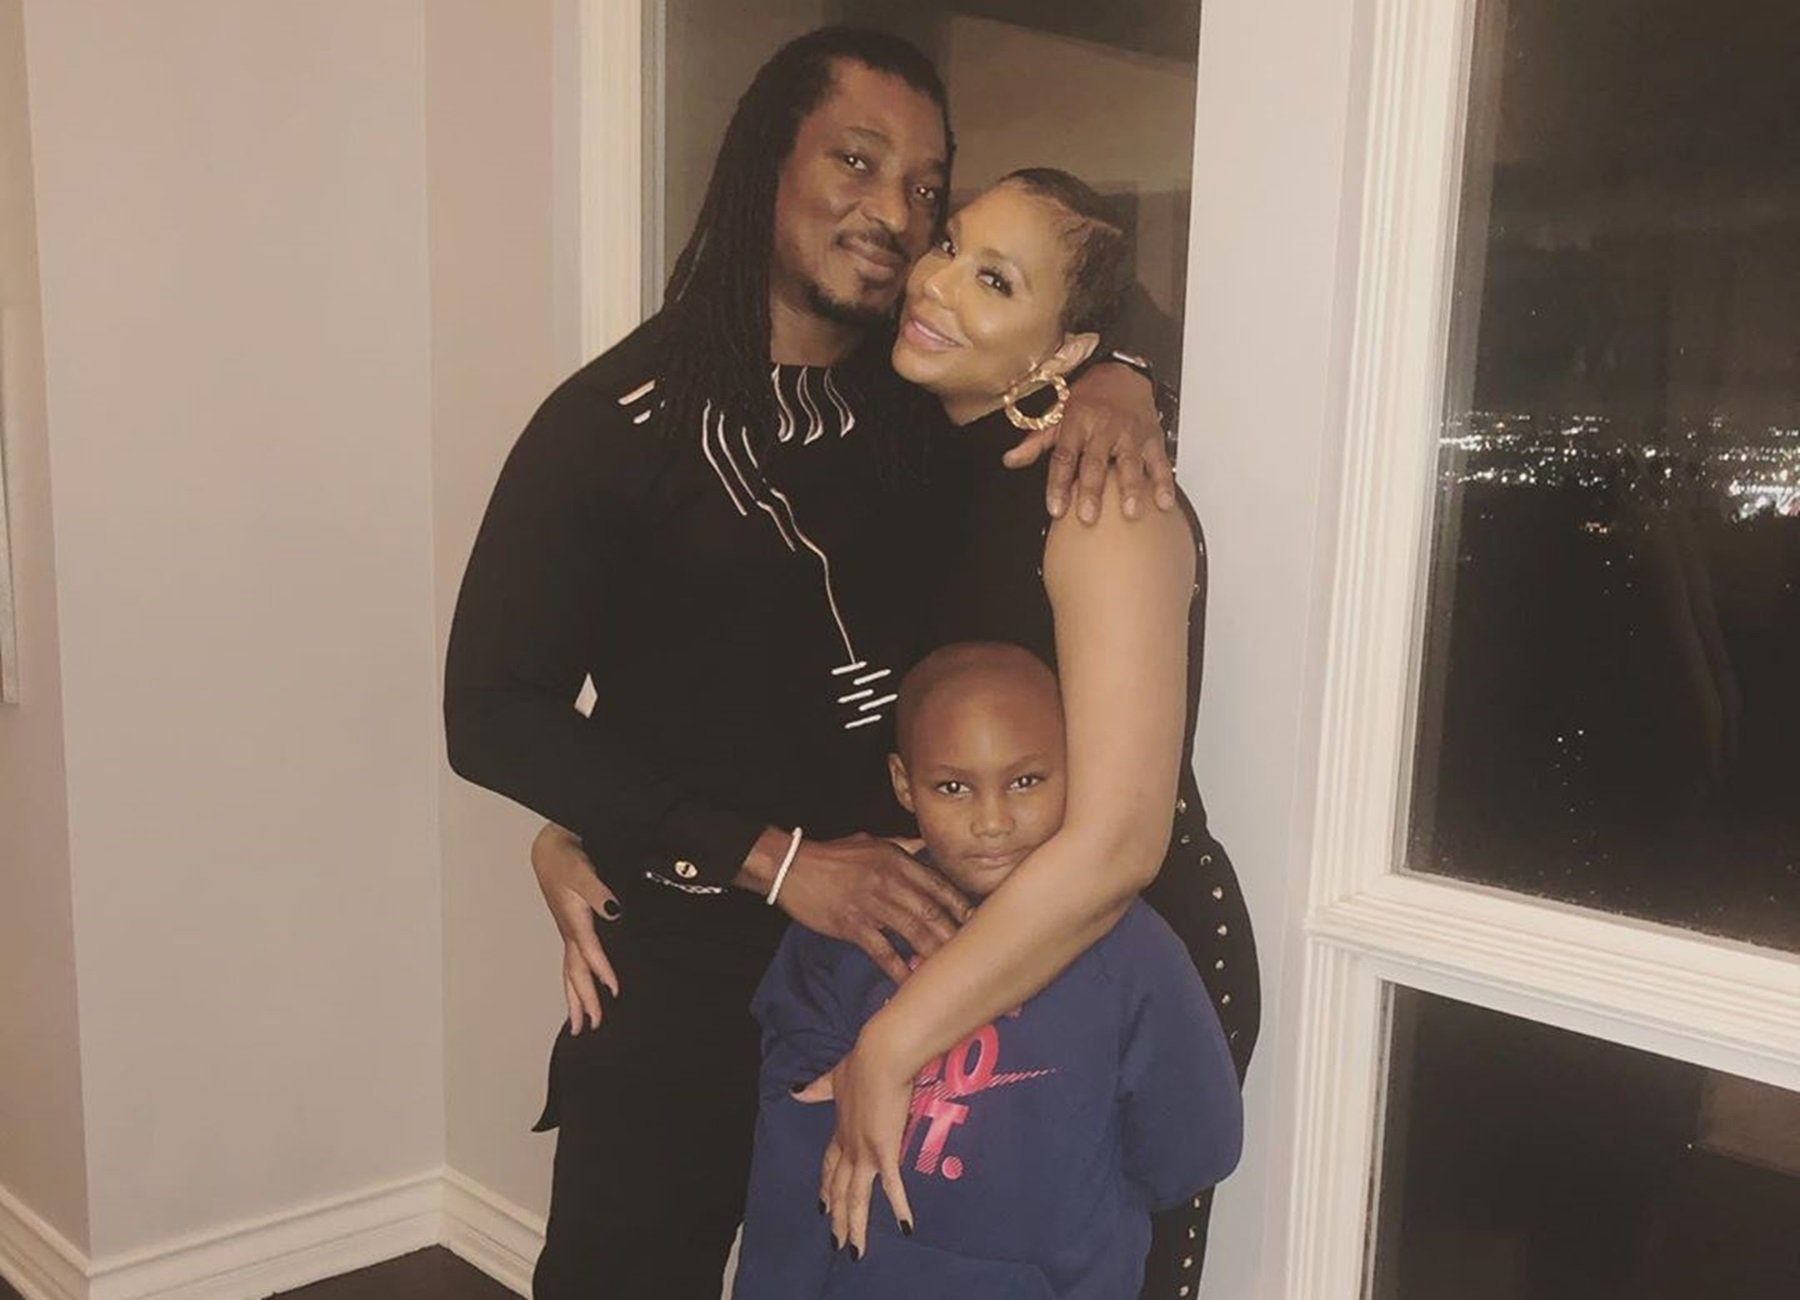 Tamar Braxton's BF, David Adefeso Talks About Retirement Accounts - See His Video